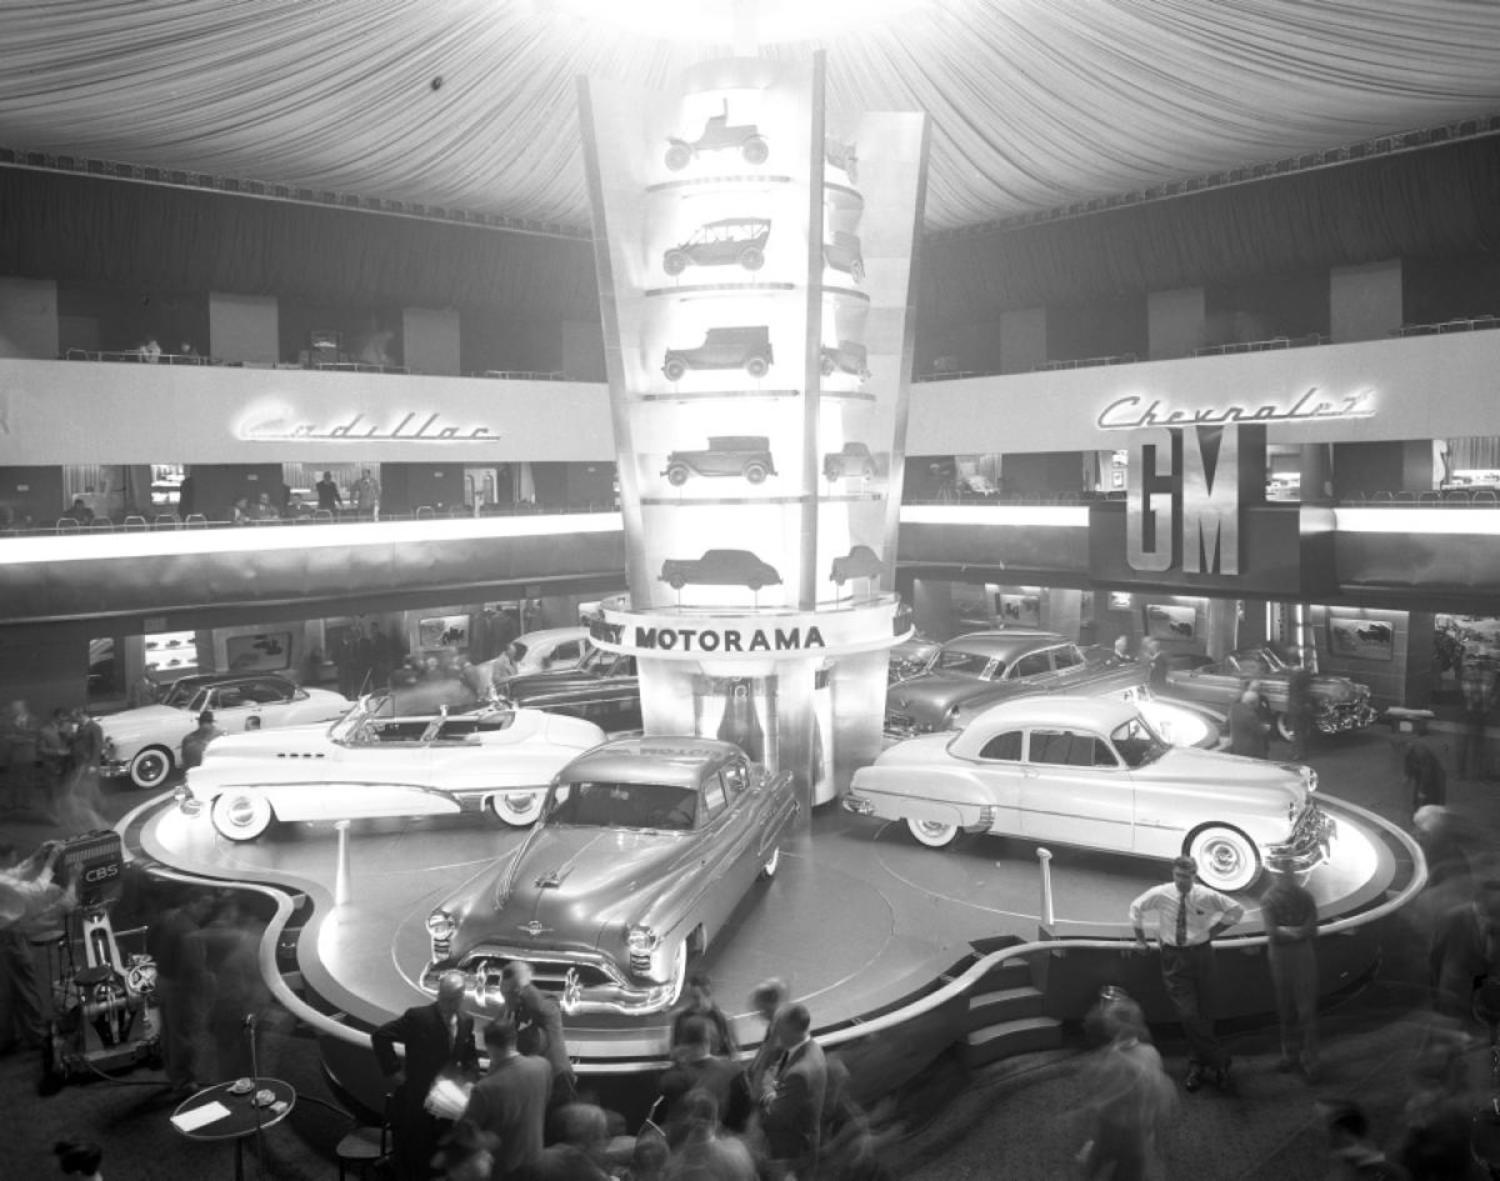 General Motor's famous Motorama exhibition puts on the style at the Waldorf-Astoria.